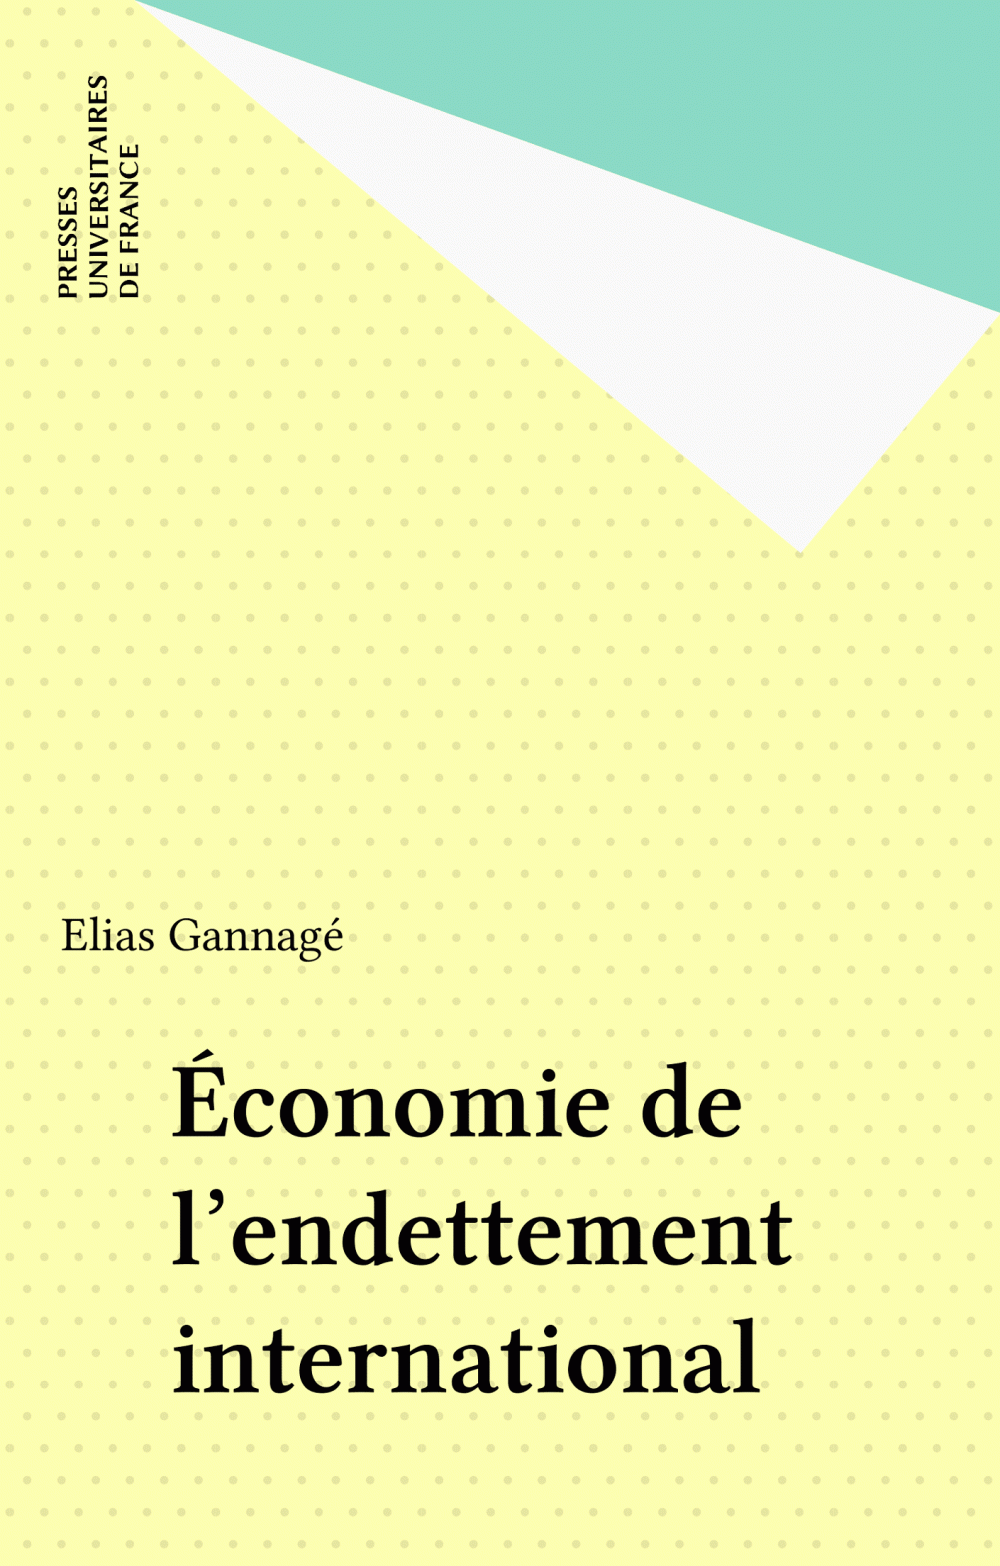 Économie de l'endettement international